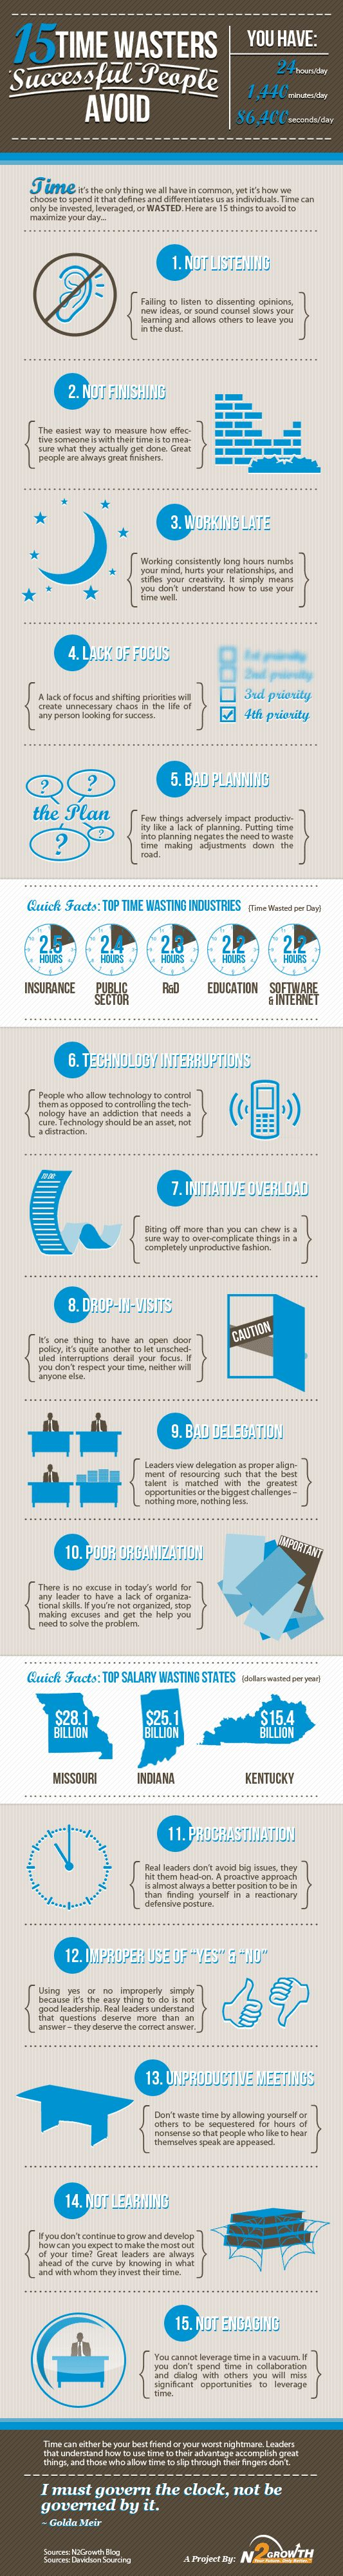 15 Time Wasters that successful people avoid ... thanks to N2Growth for sending this one into DTG Magazine!